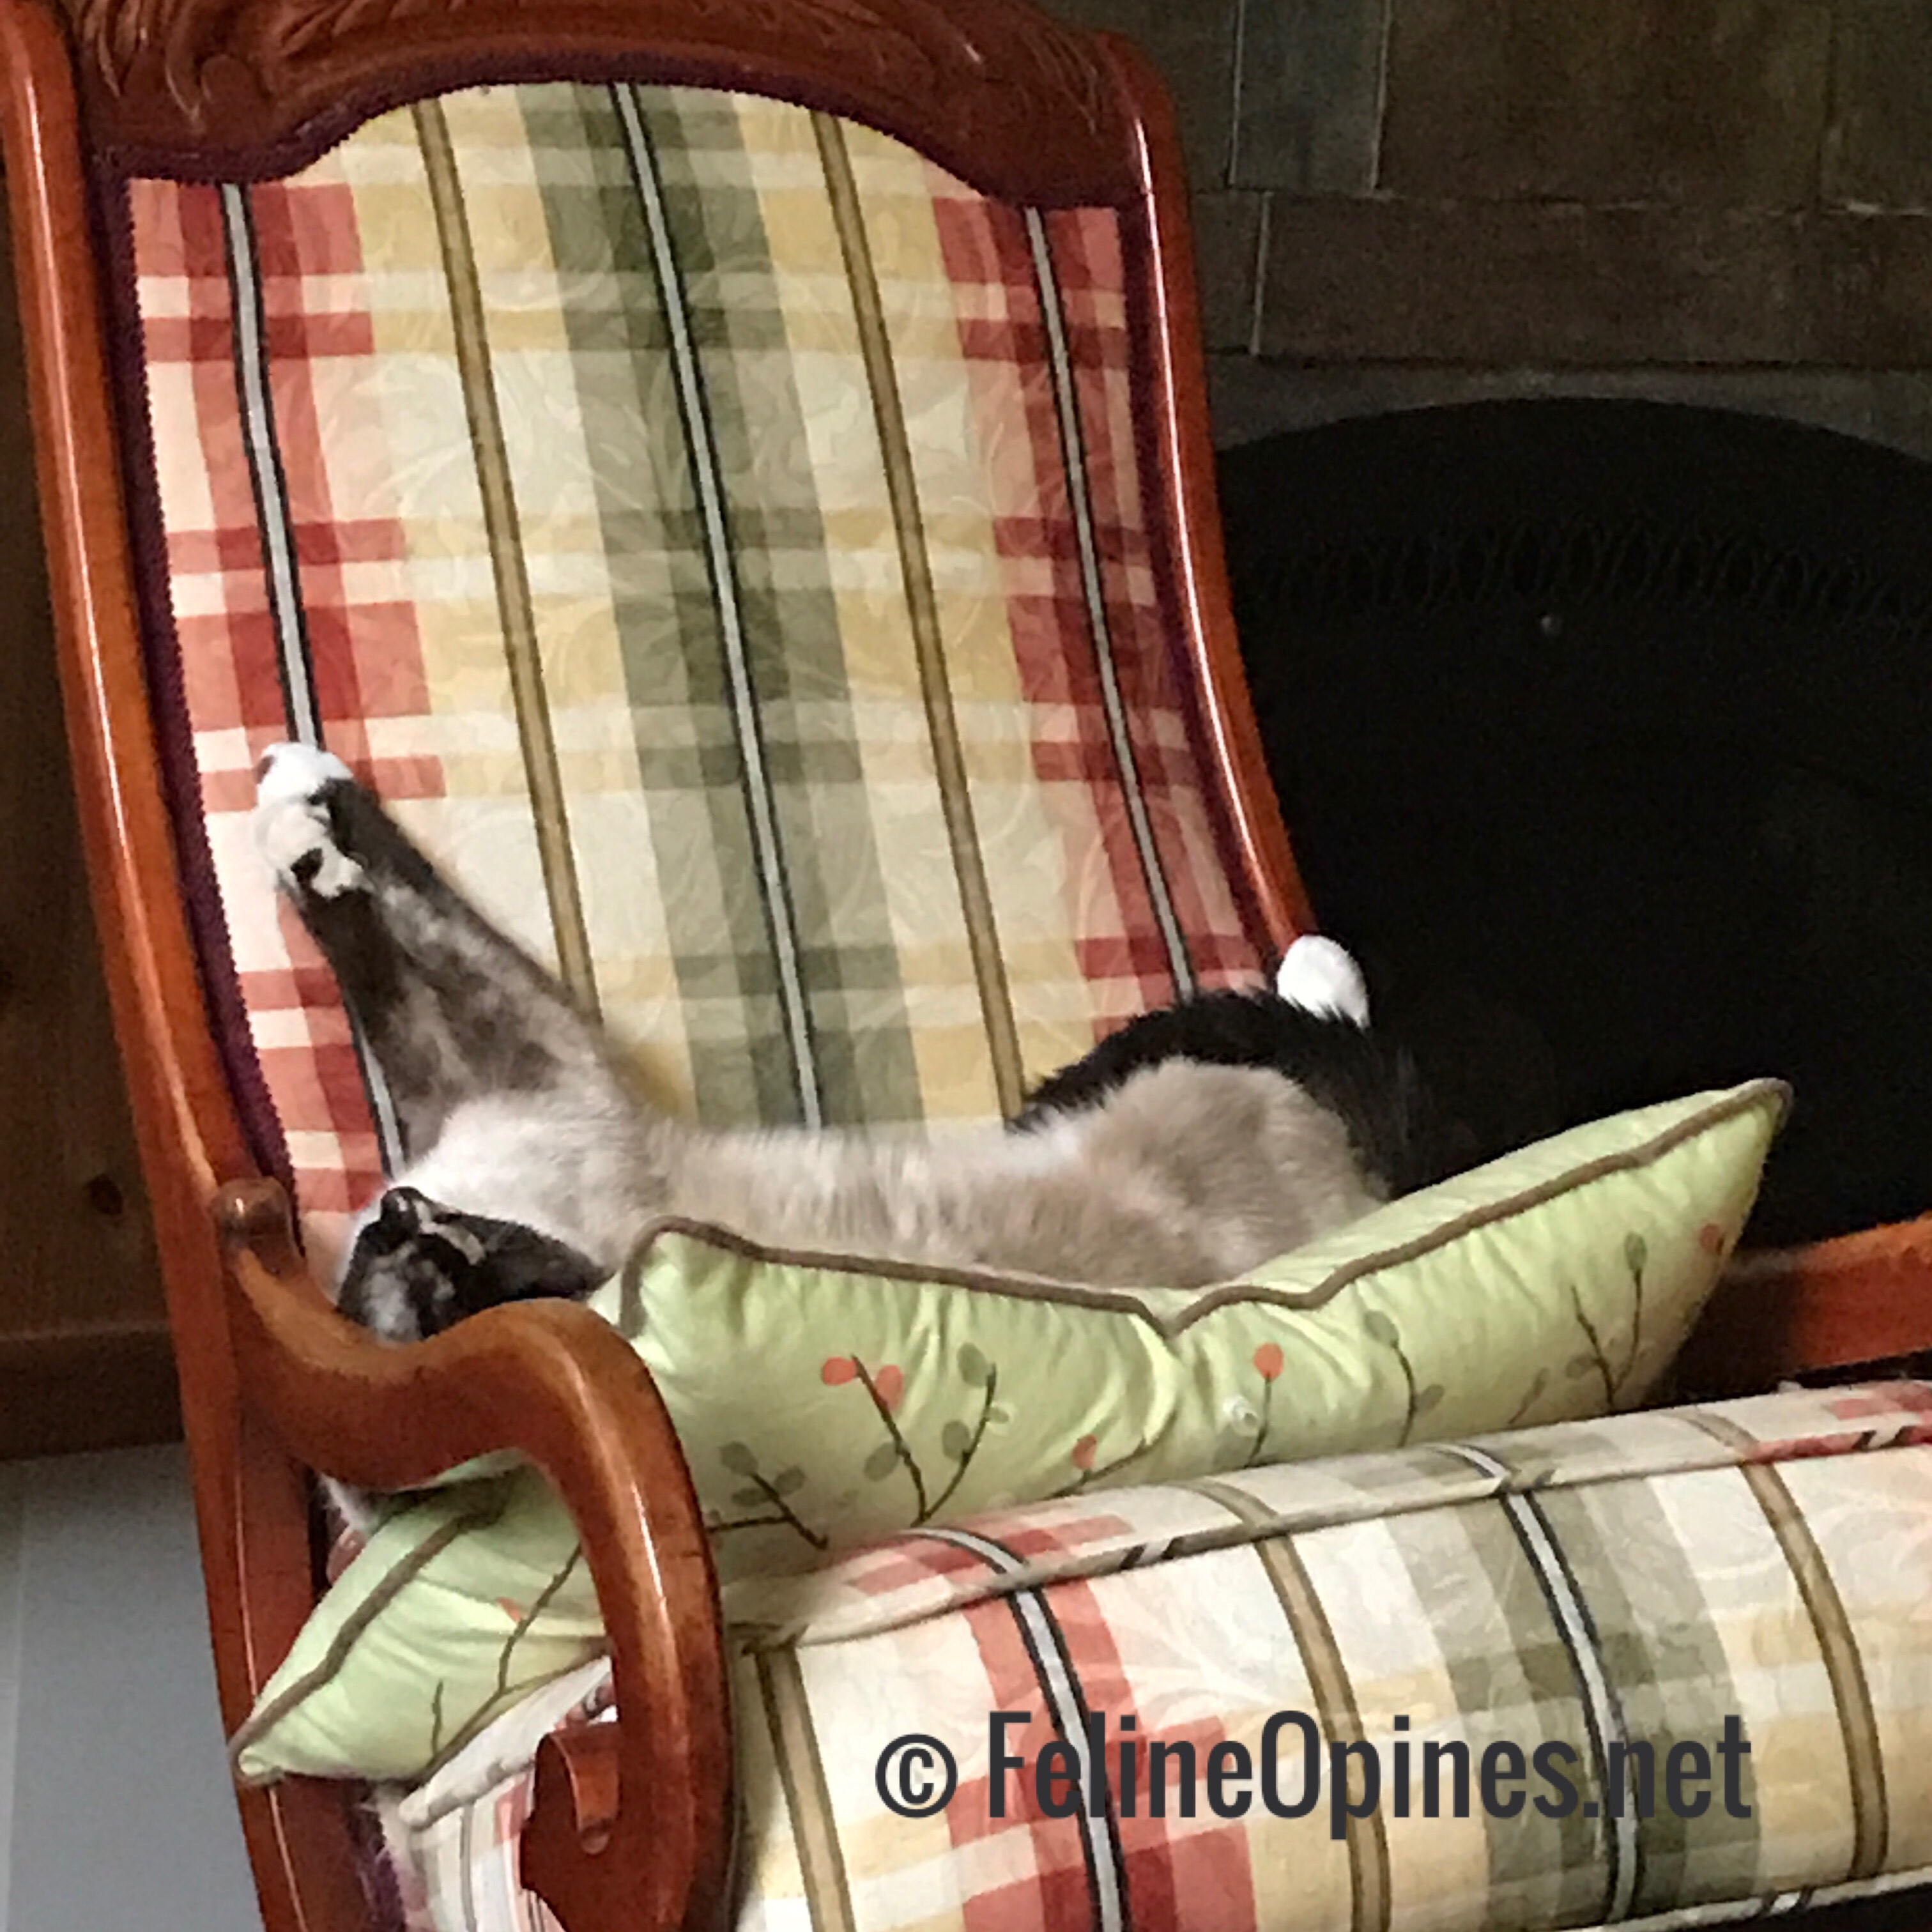 siamese cat on rocking chair